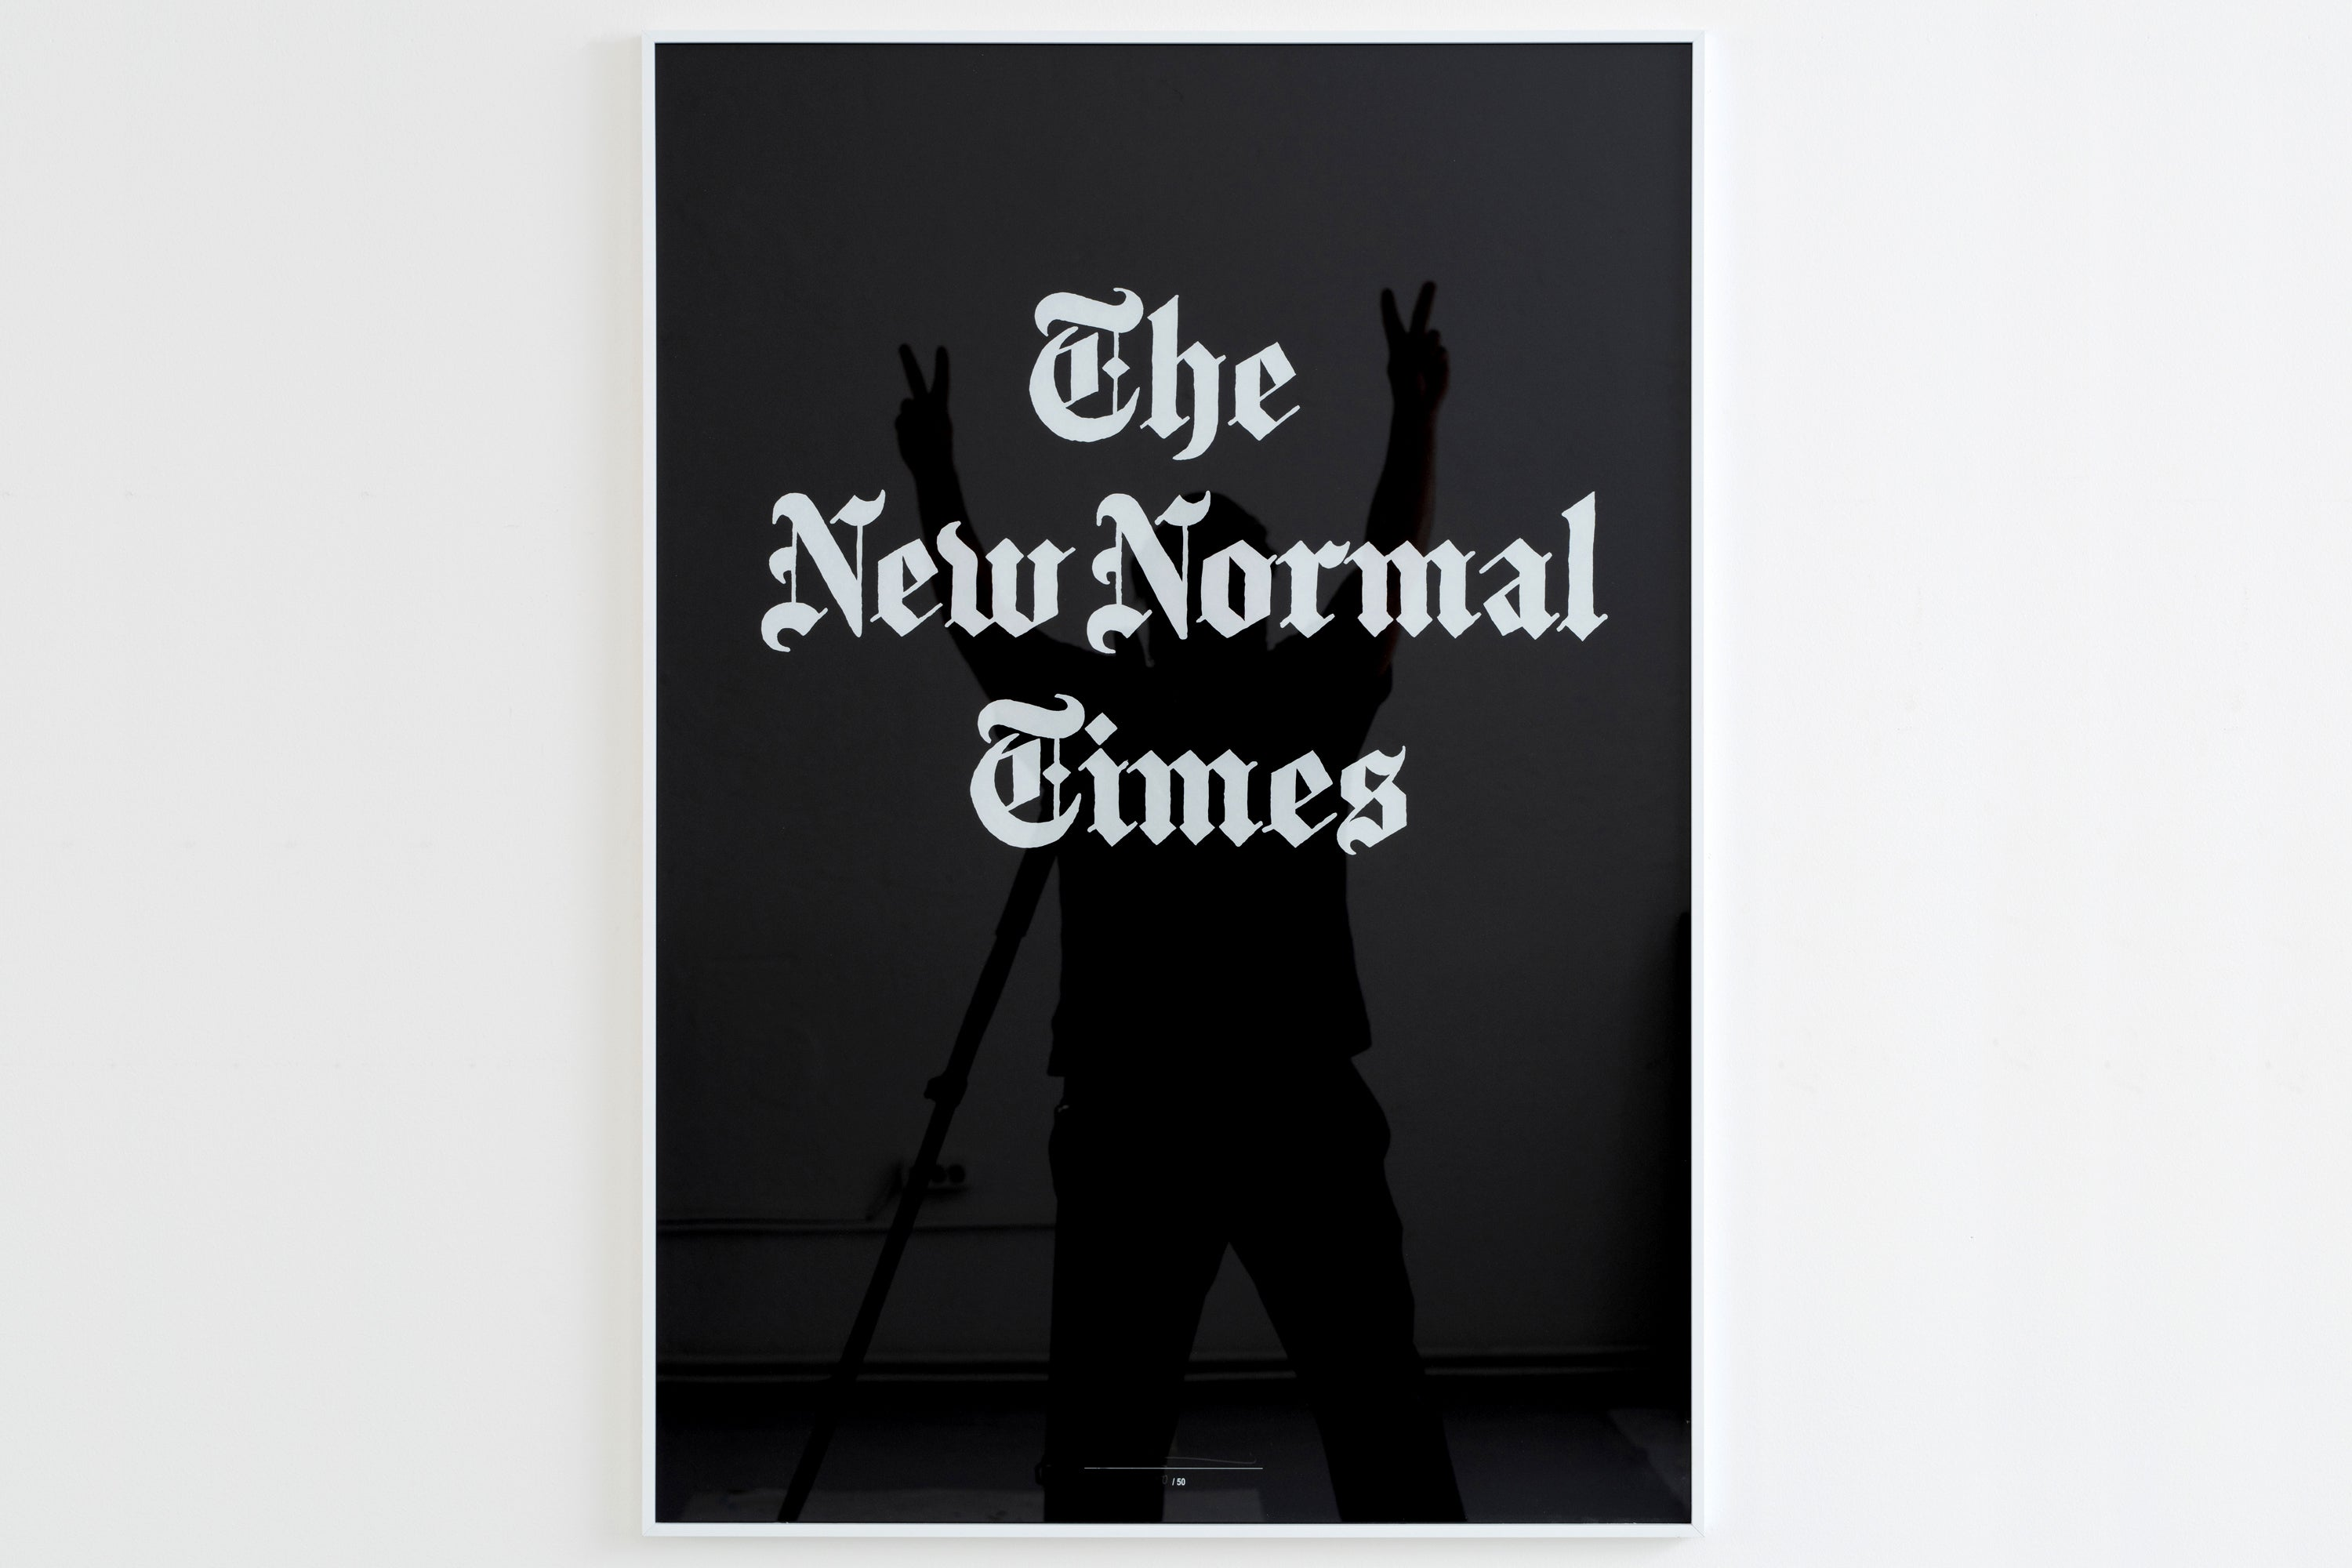 THE INVERTED NEW NORMAL TIMES